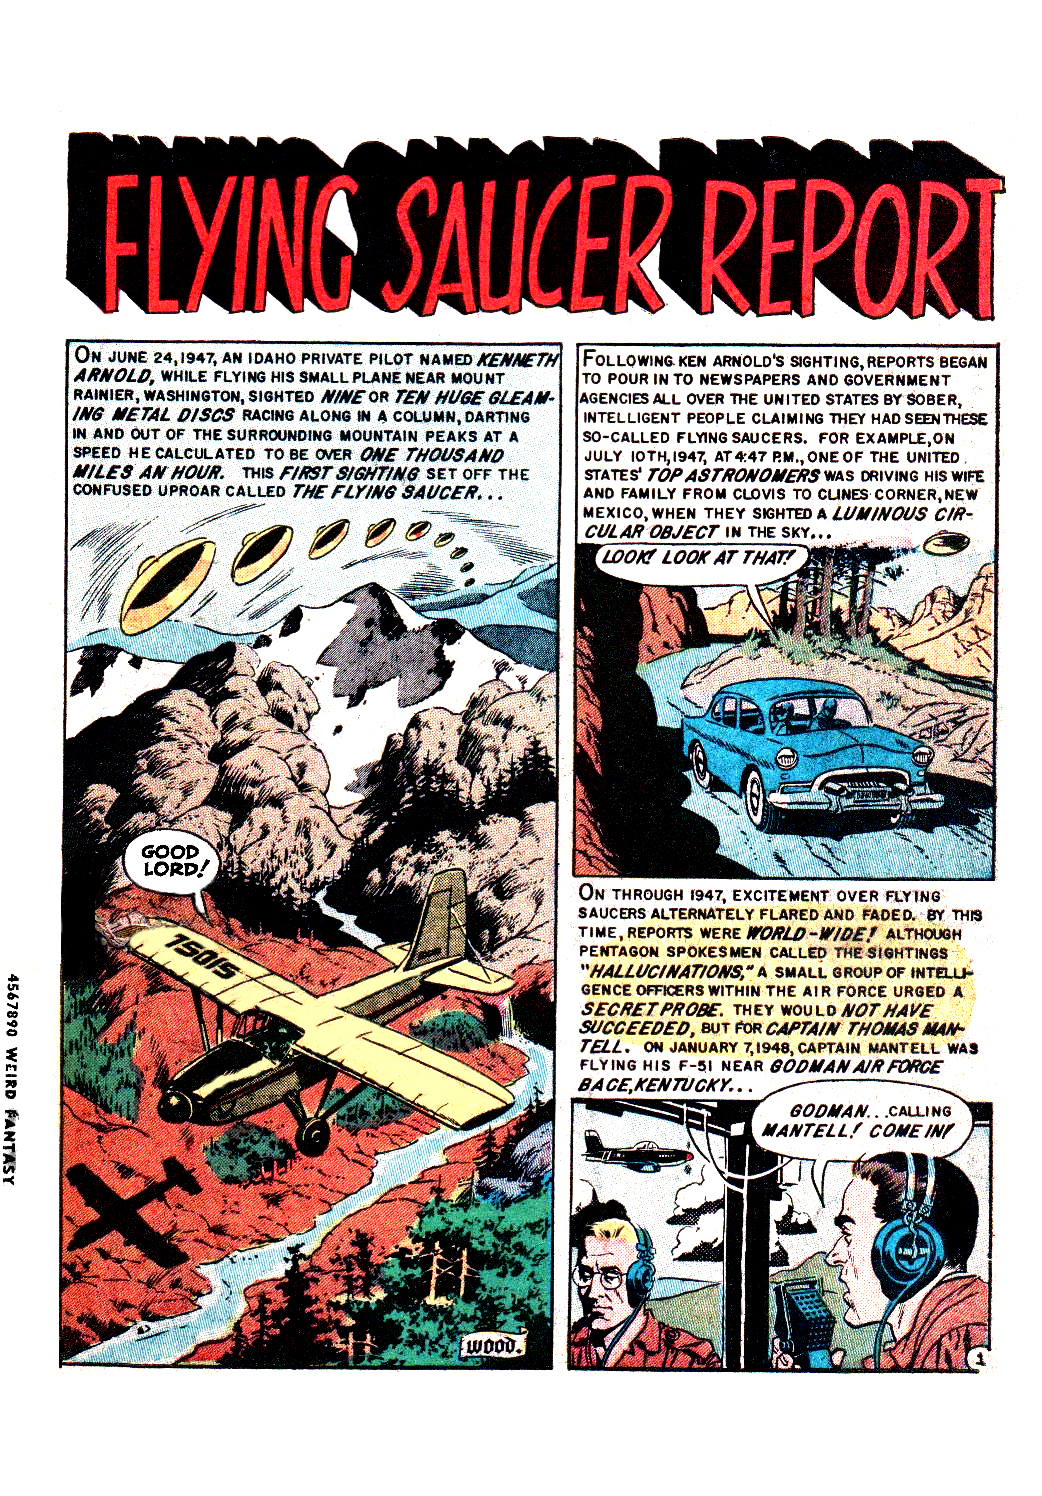 Flying saucer report – Weird Science-Fantasy #25  Wallace Wood